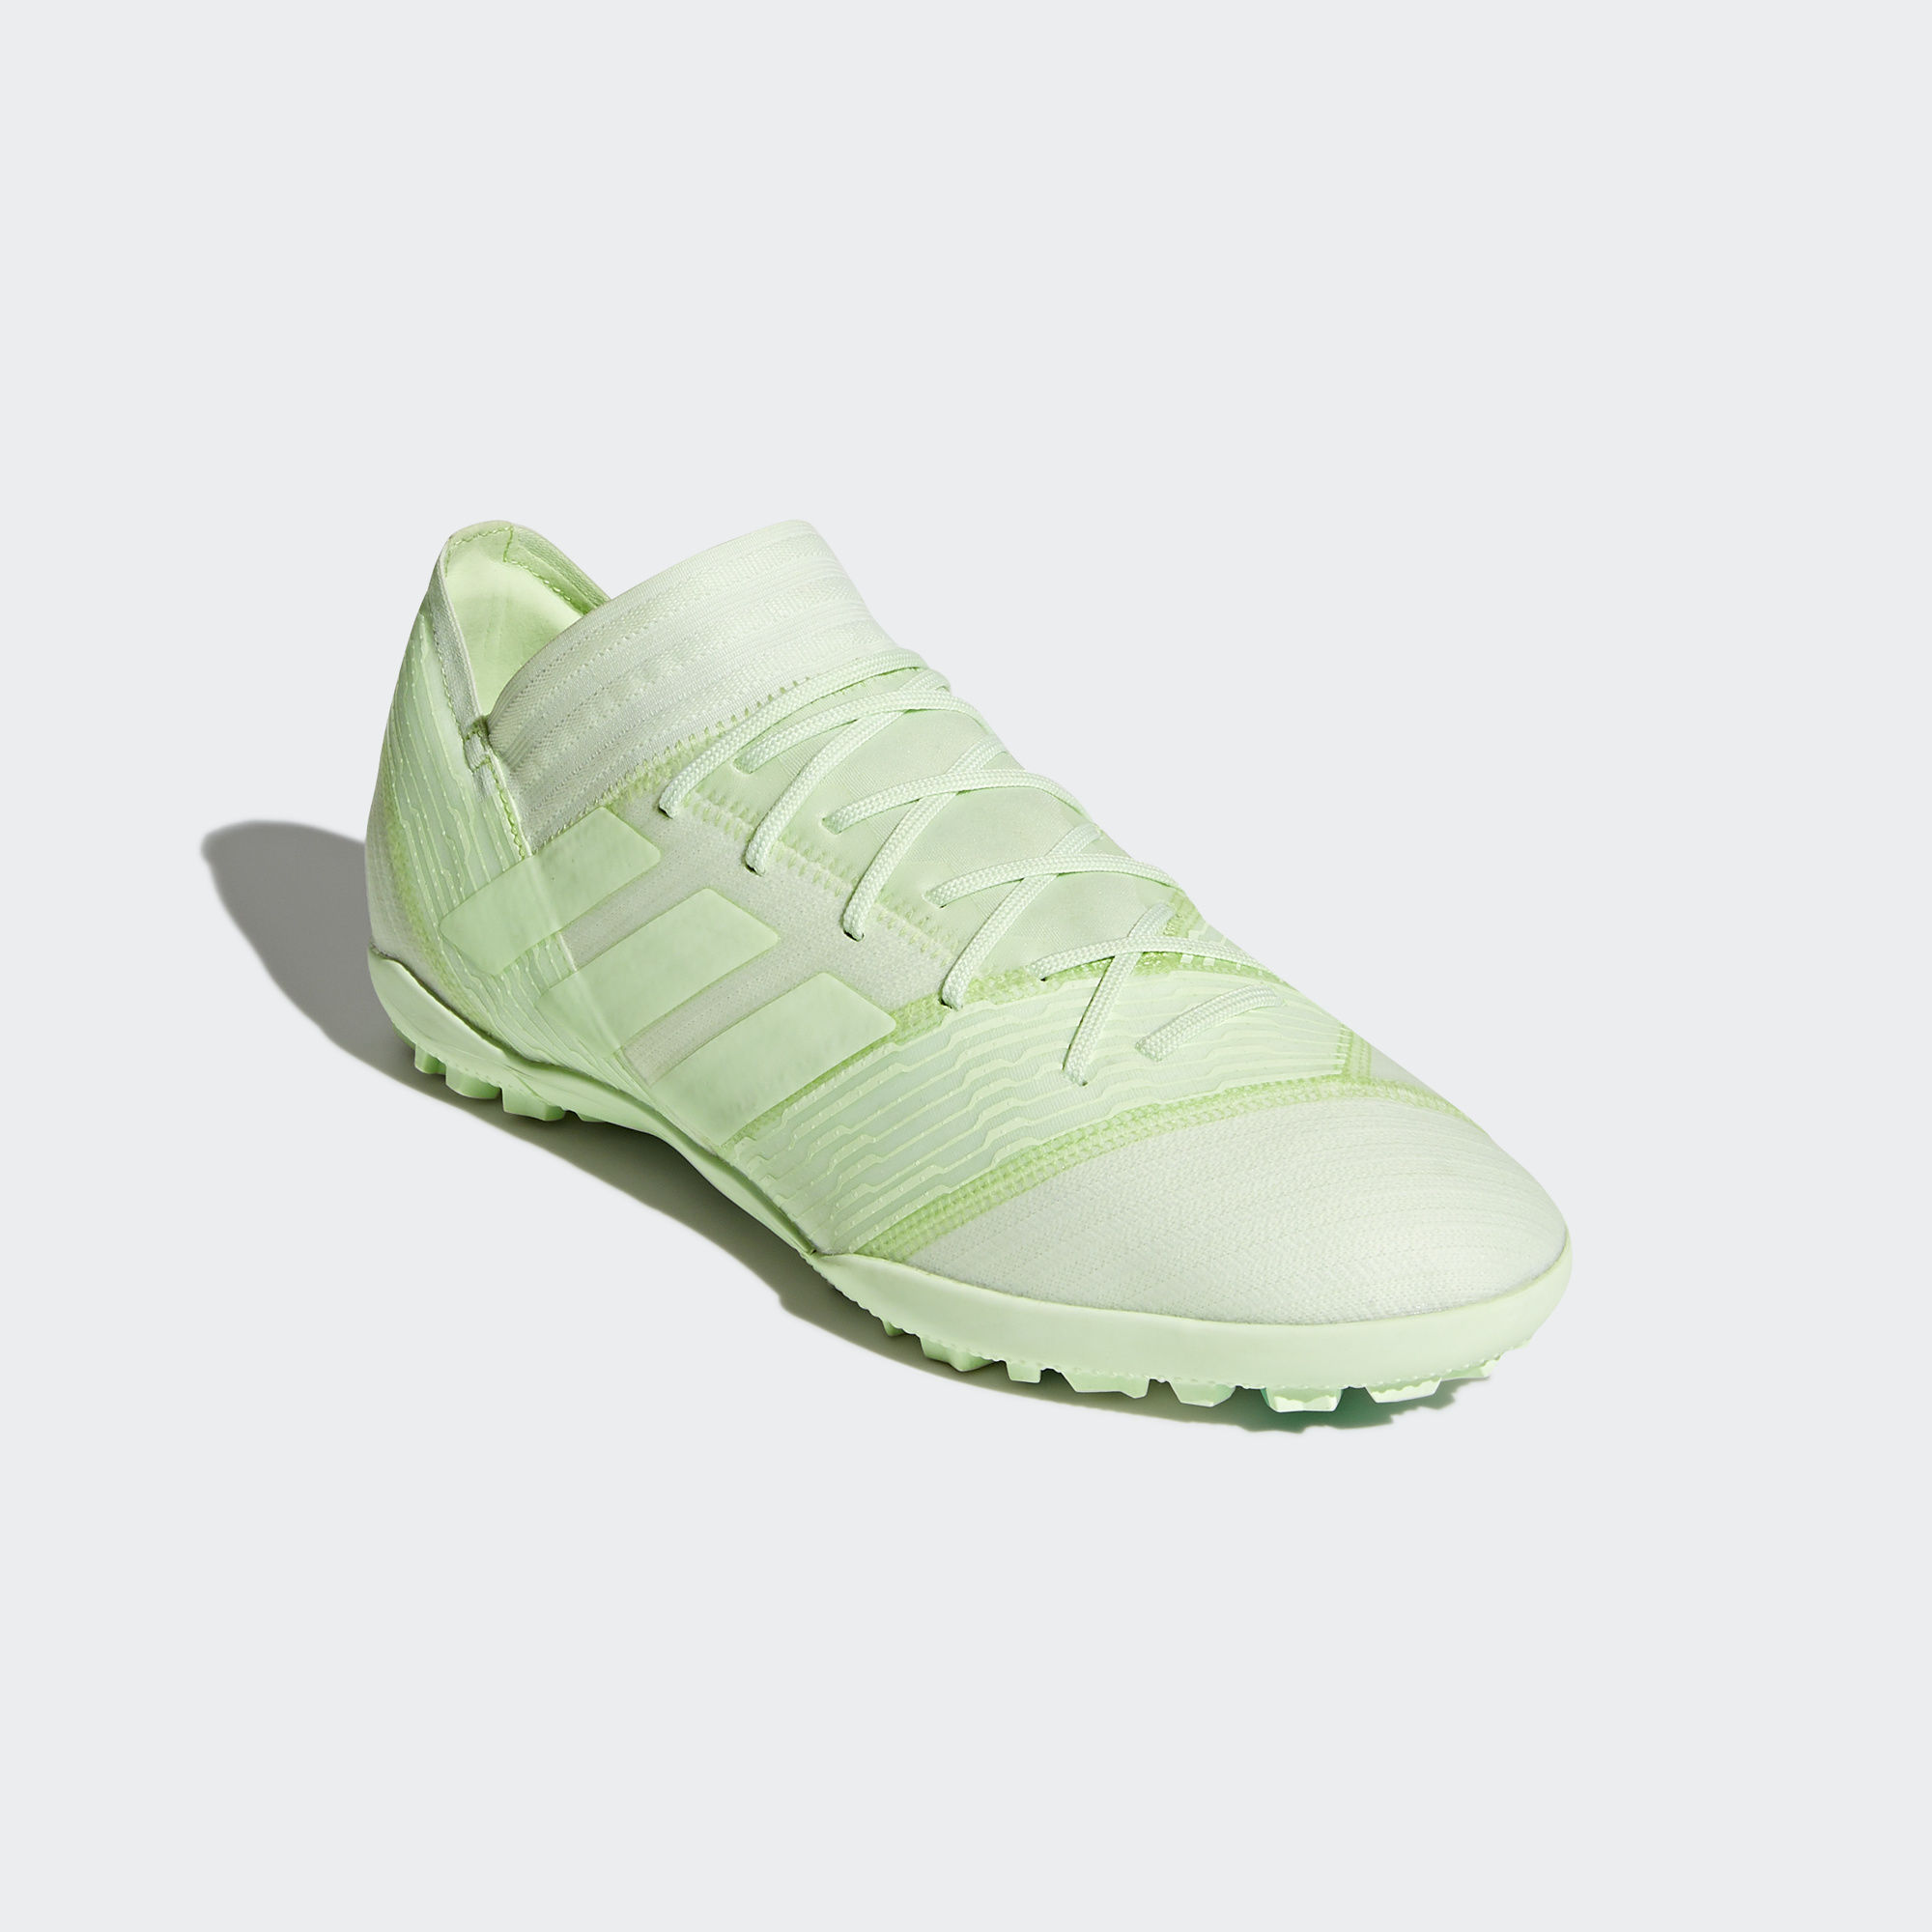 best website 832b6 e0548 ... Click to enlarge image  adidas nemeziz tango 17 3 tf deadly strike aero green aero green hi res green i.jpg  ...